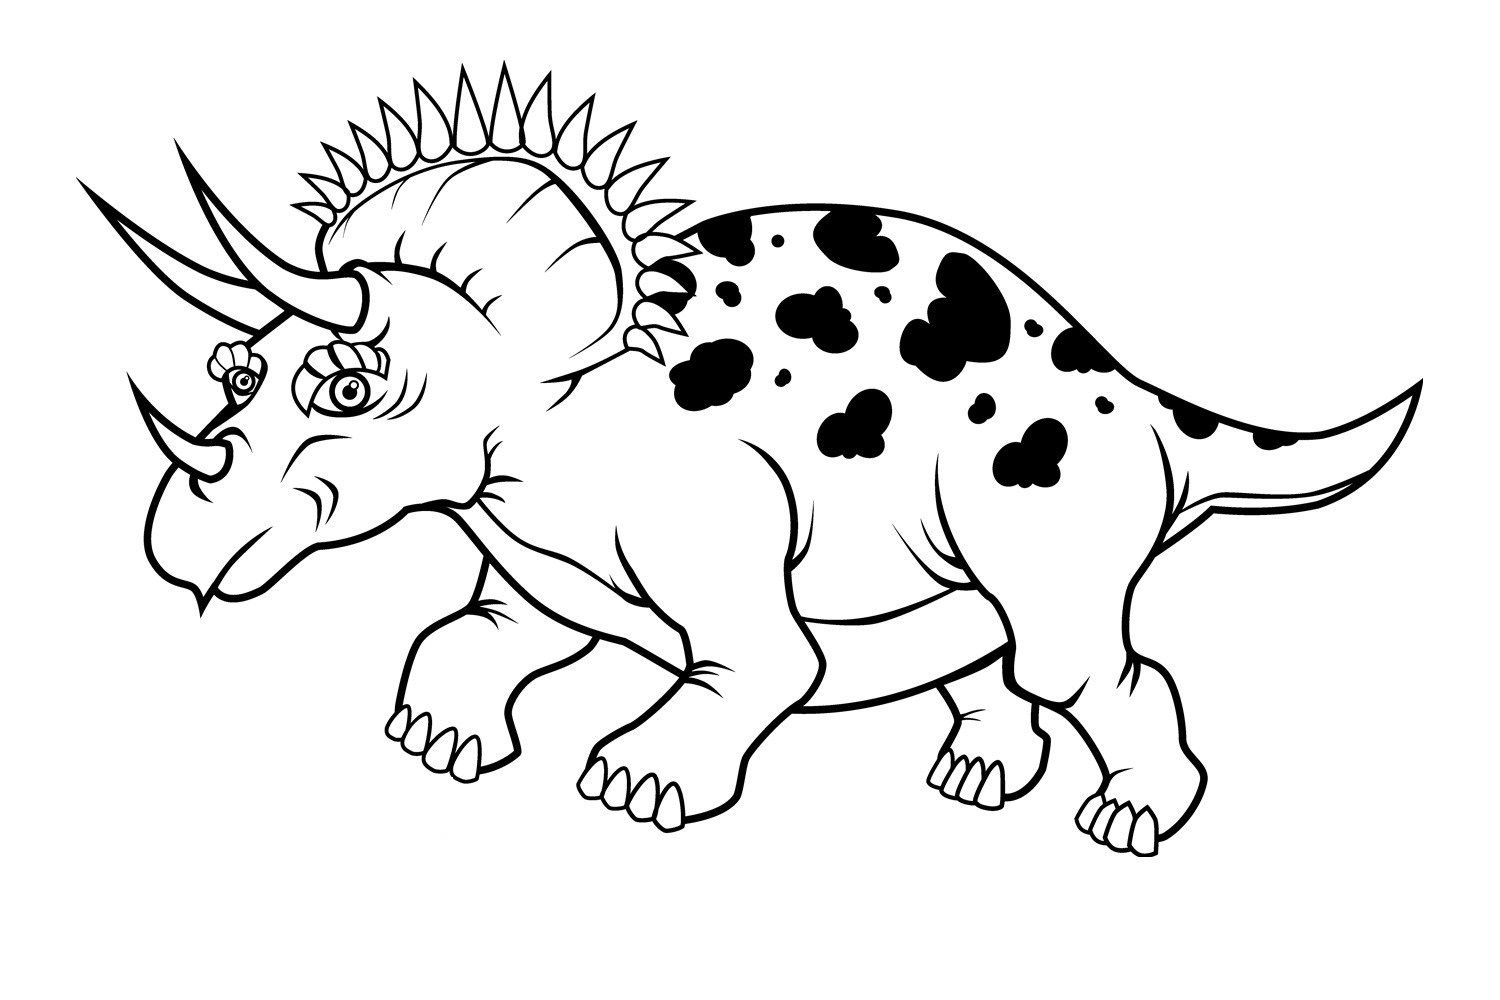 Coloring Pages To Print : Free printable triceratops coloring pages for kids